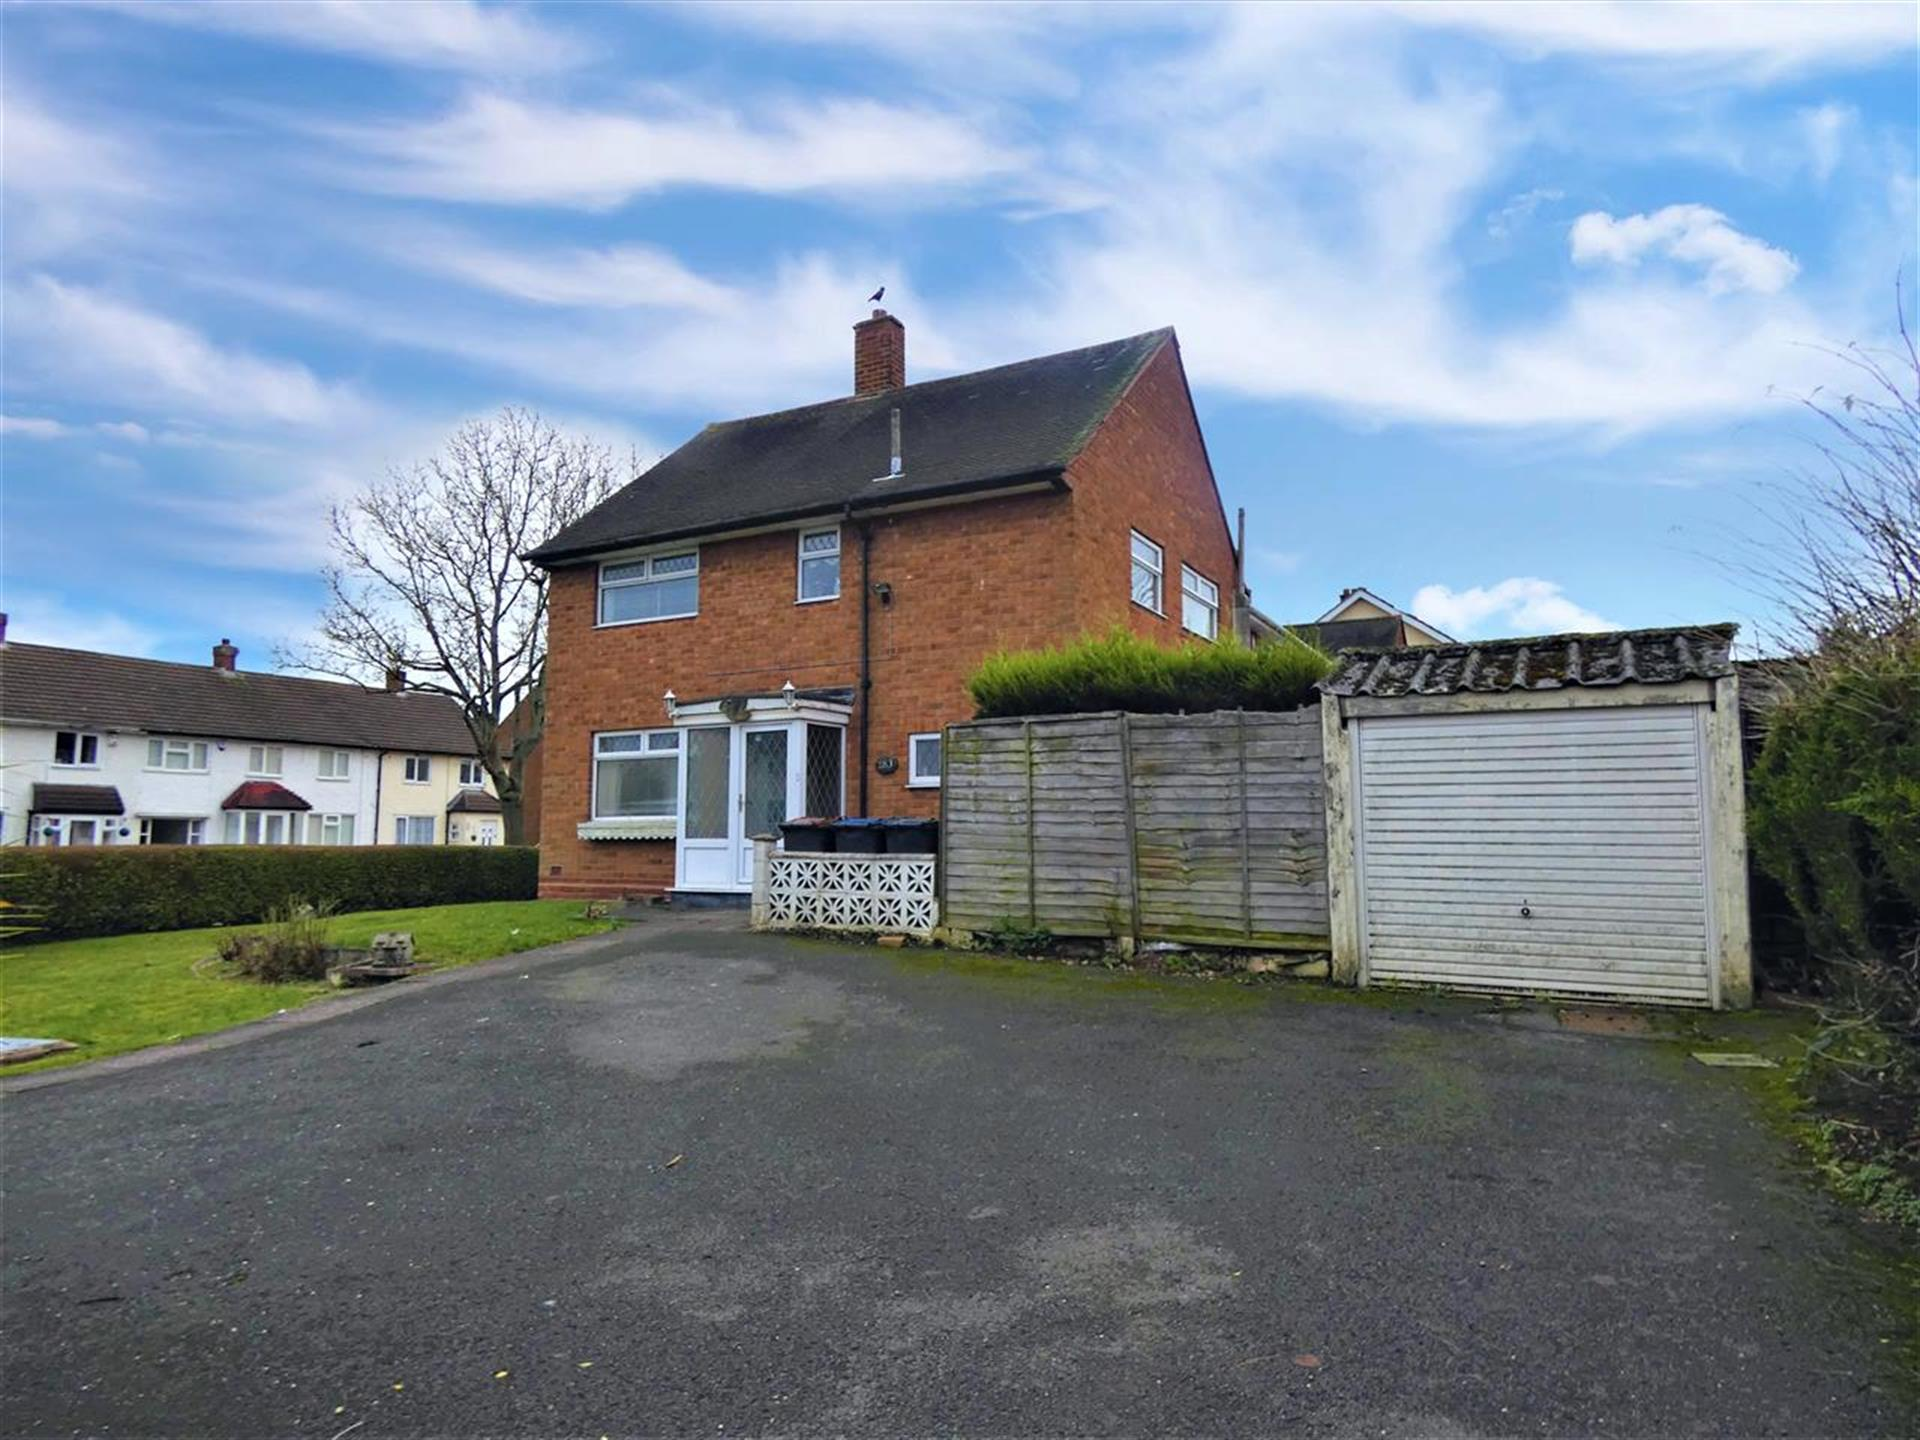 4 Bedroom End Terraced House For Sale - Image 12